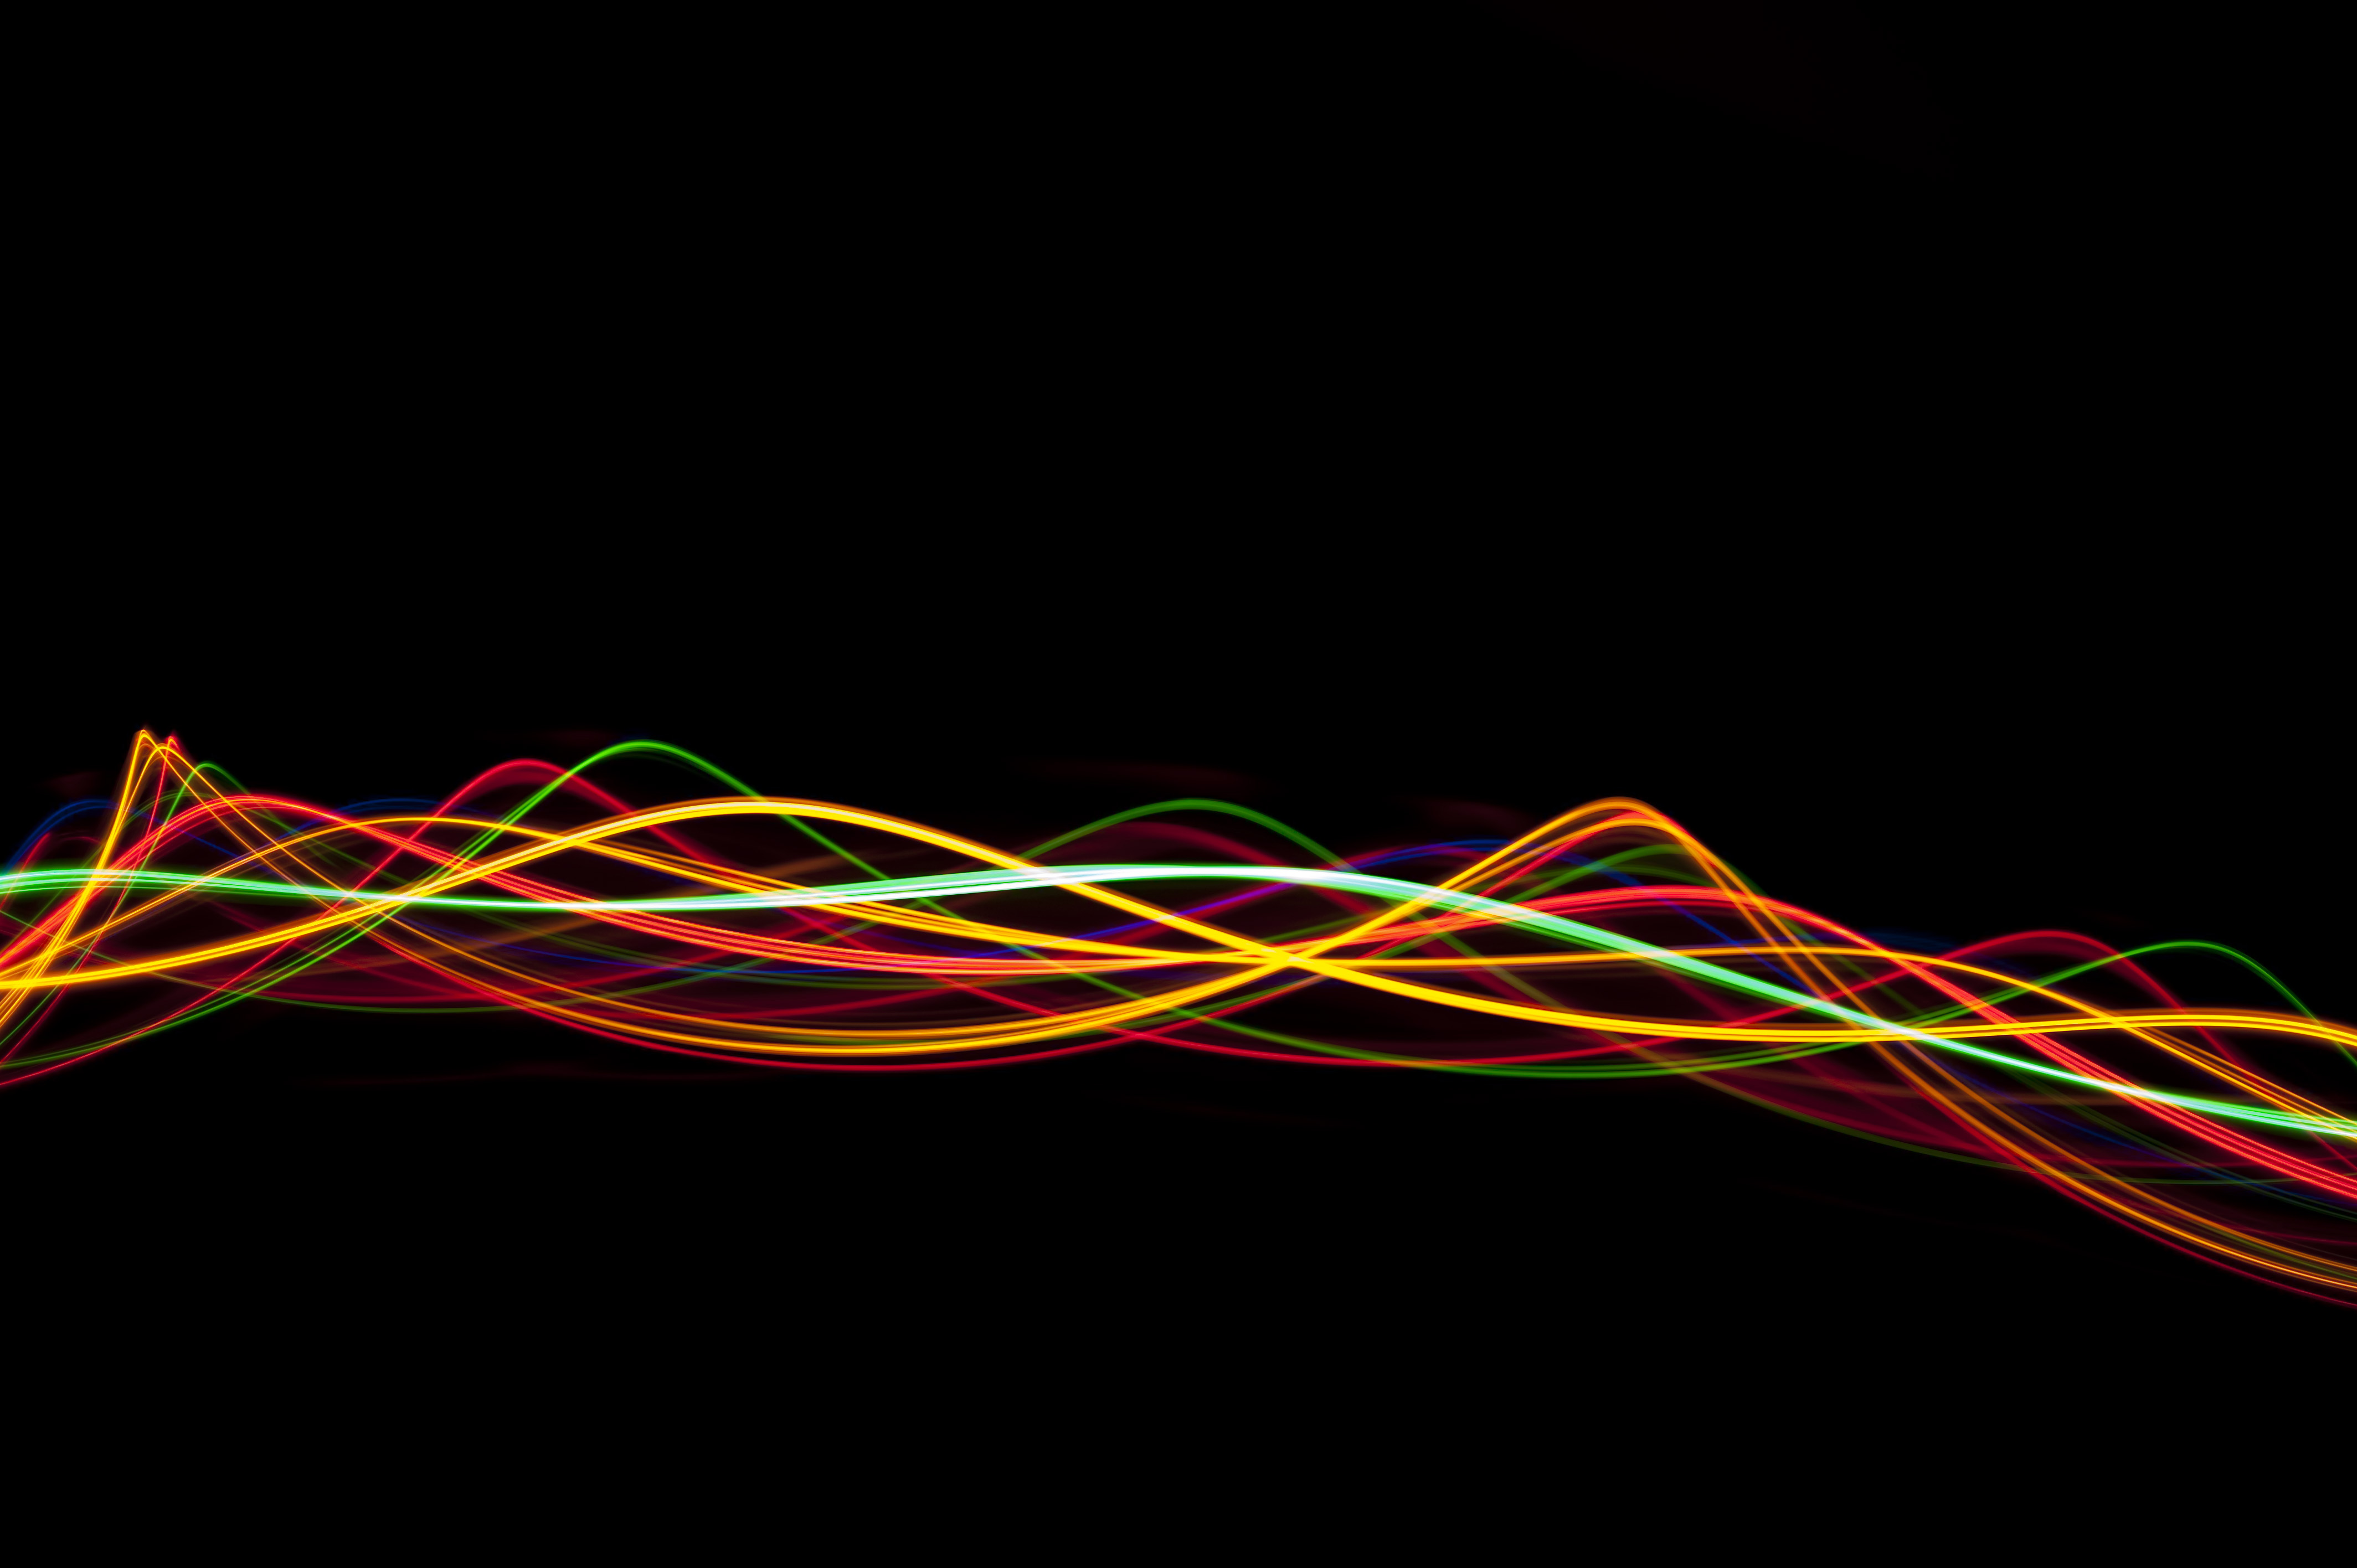 a bundle of twisting lines of colored light